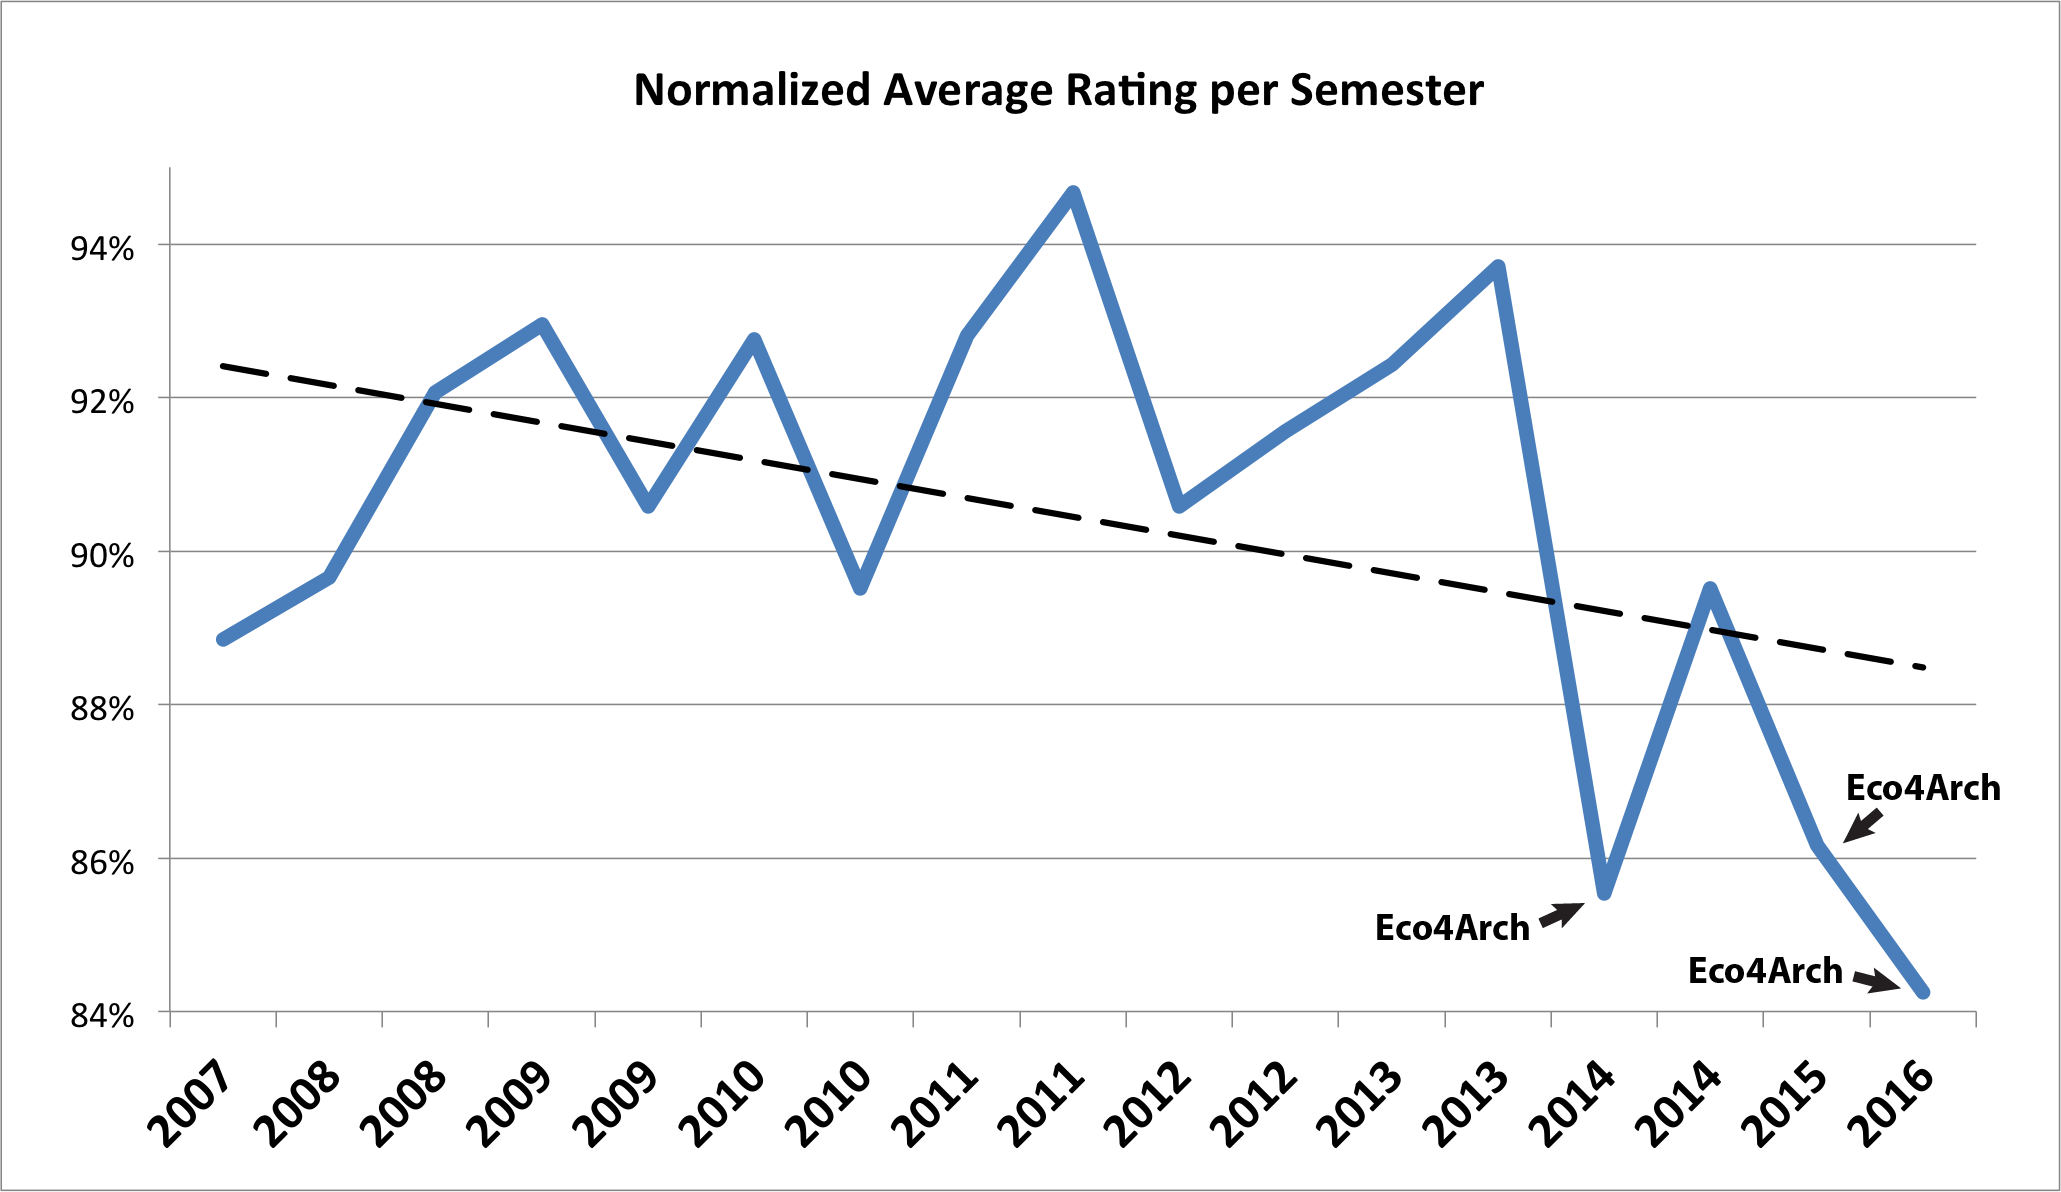 NormAvgRatings per Semester 2016-06 (above 79%, EcoArch Highlighted)